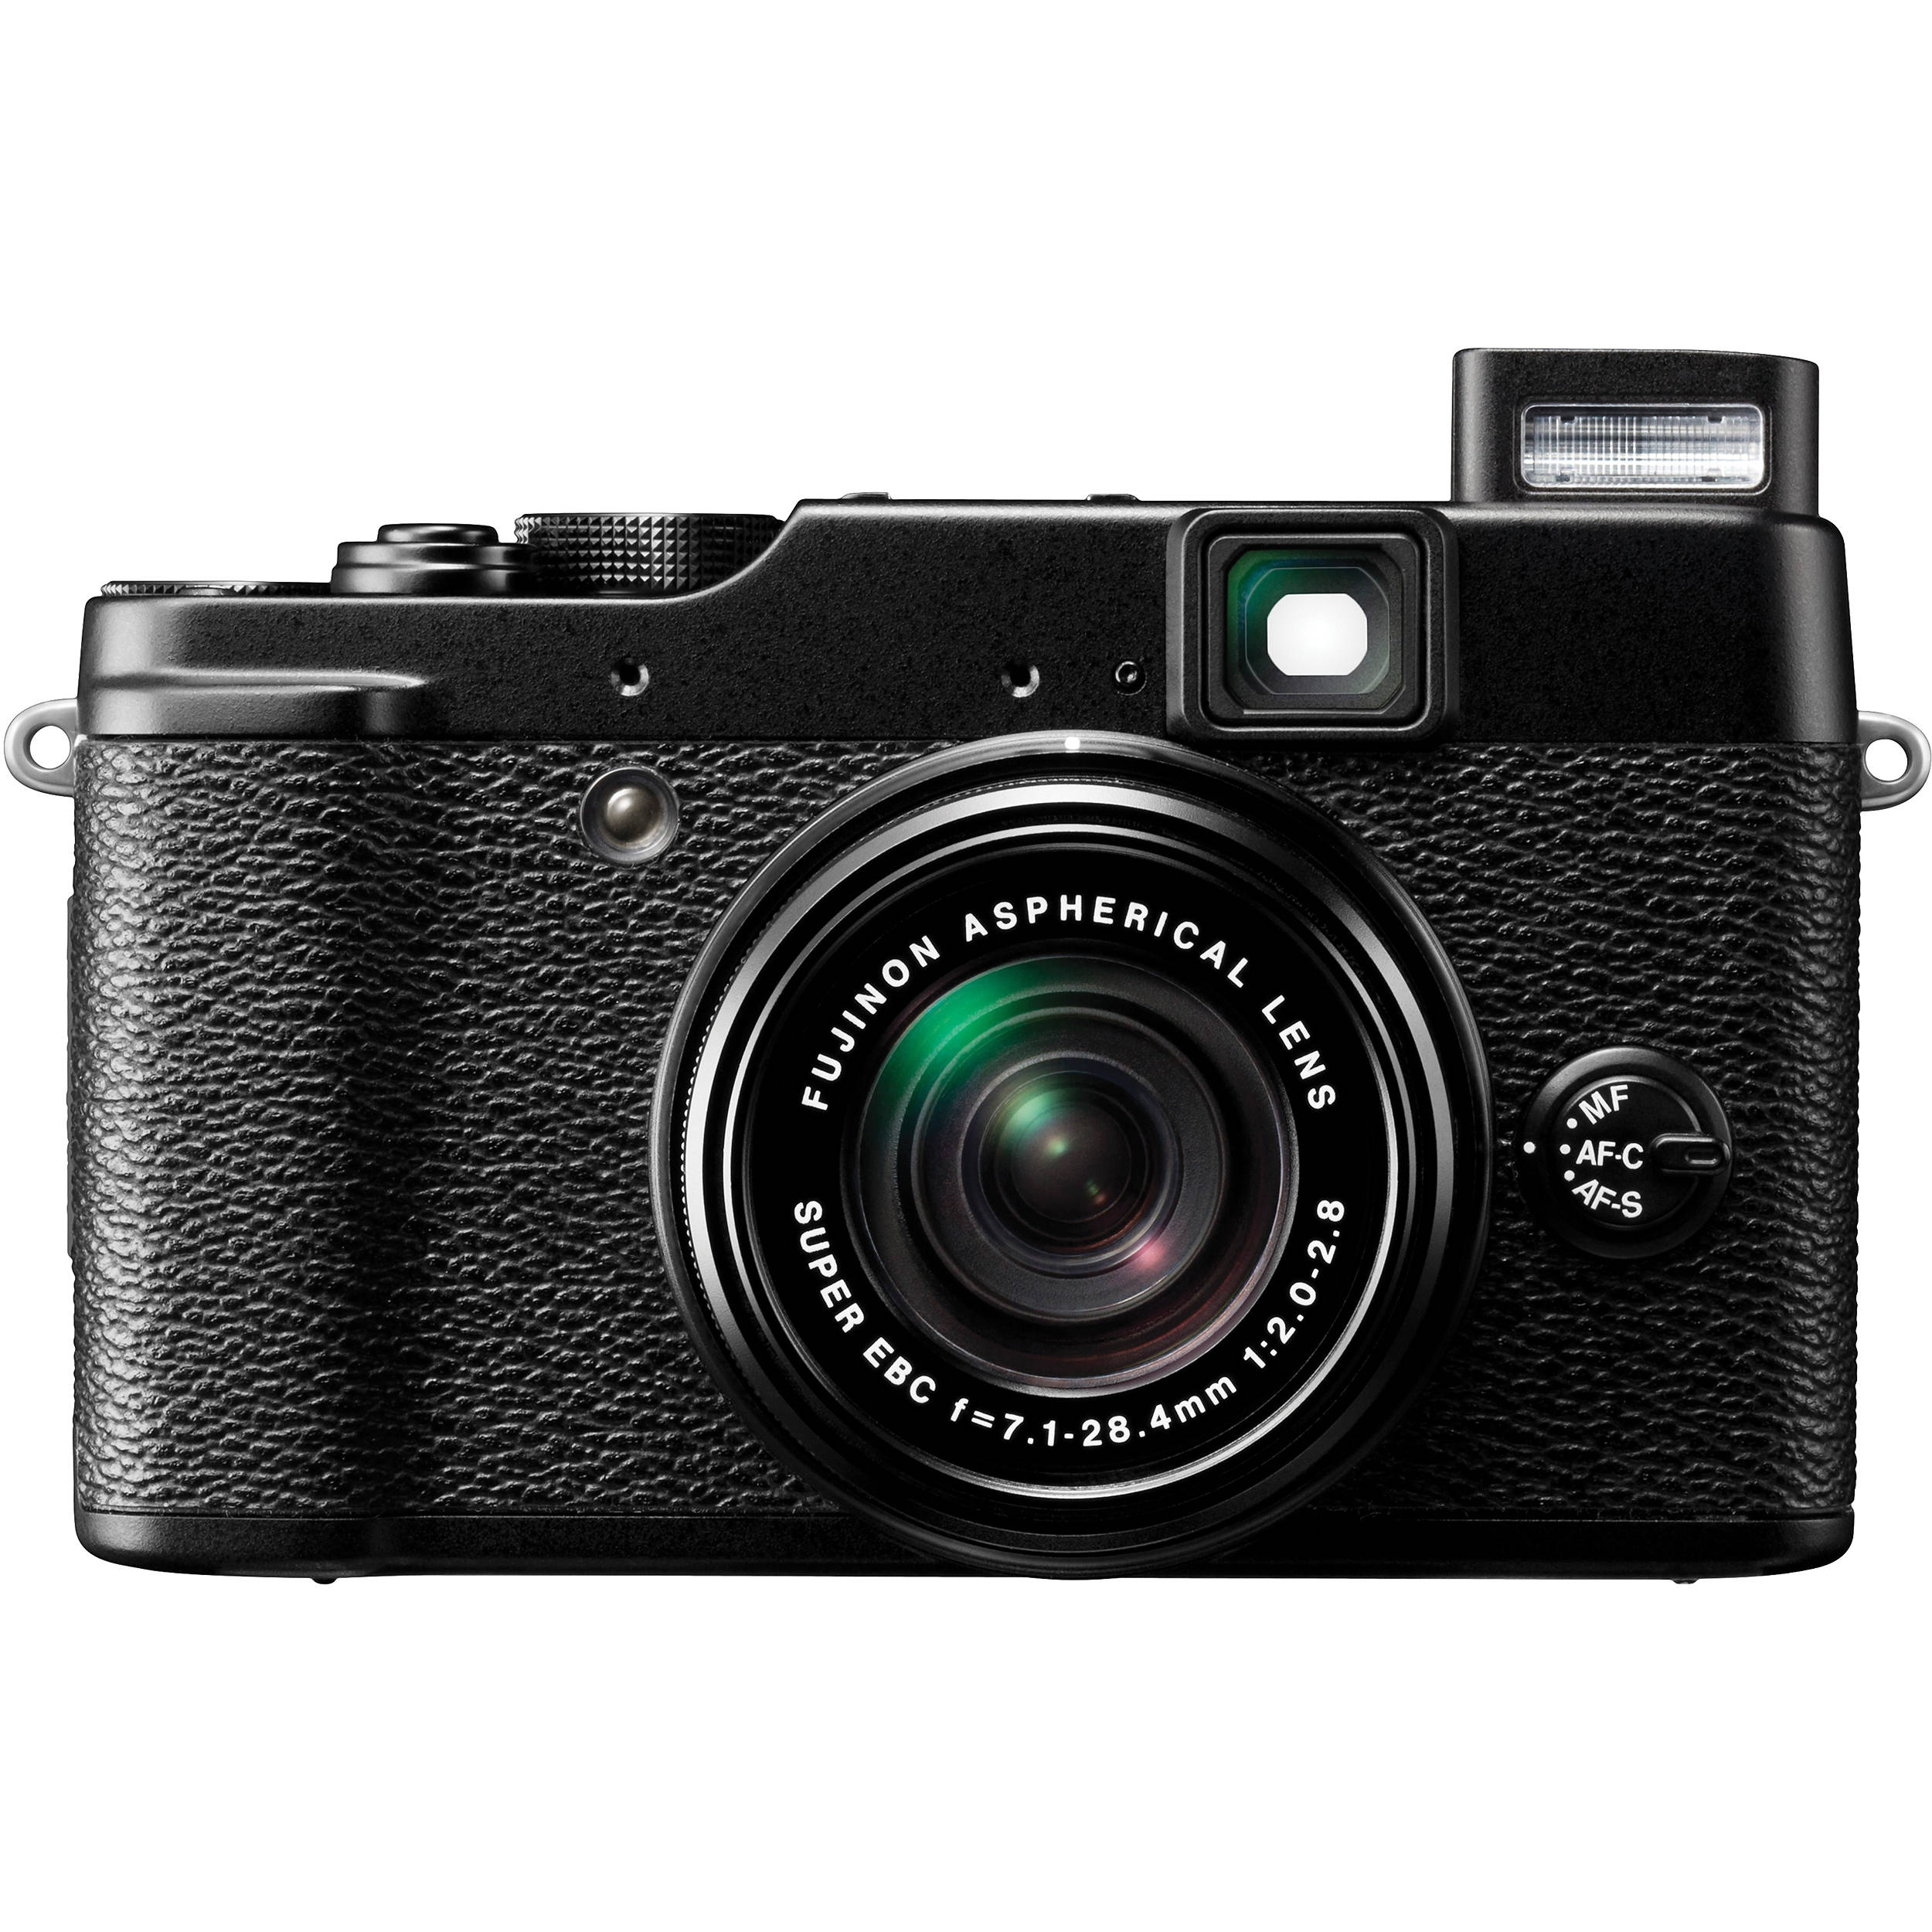 fujifilm x10 digital camera black 16190089 b h photo video rh bhphotovideo com Fuji X10 Firmware Fuji X30